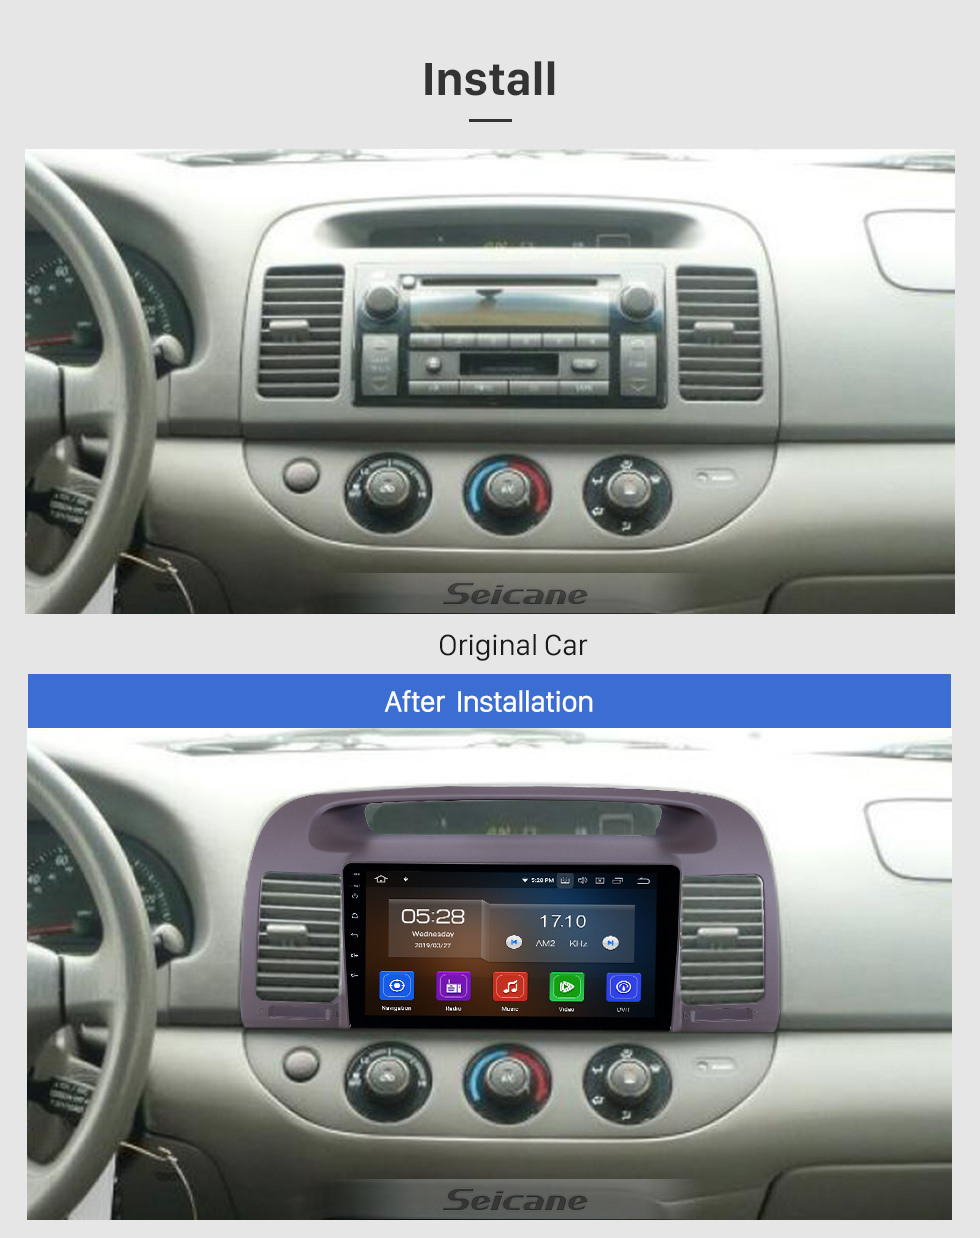 Seicane 2000-2003 Toyota Camry Android 10.0 9 inch GPS Navigation Radio Bluetooth HD Touchscreen WIFI USB Carplay support Backup camera